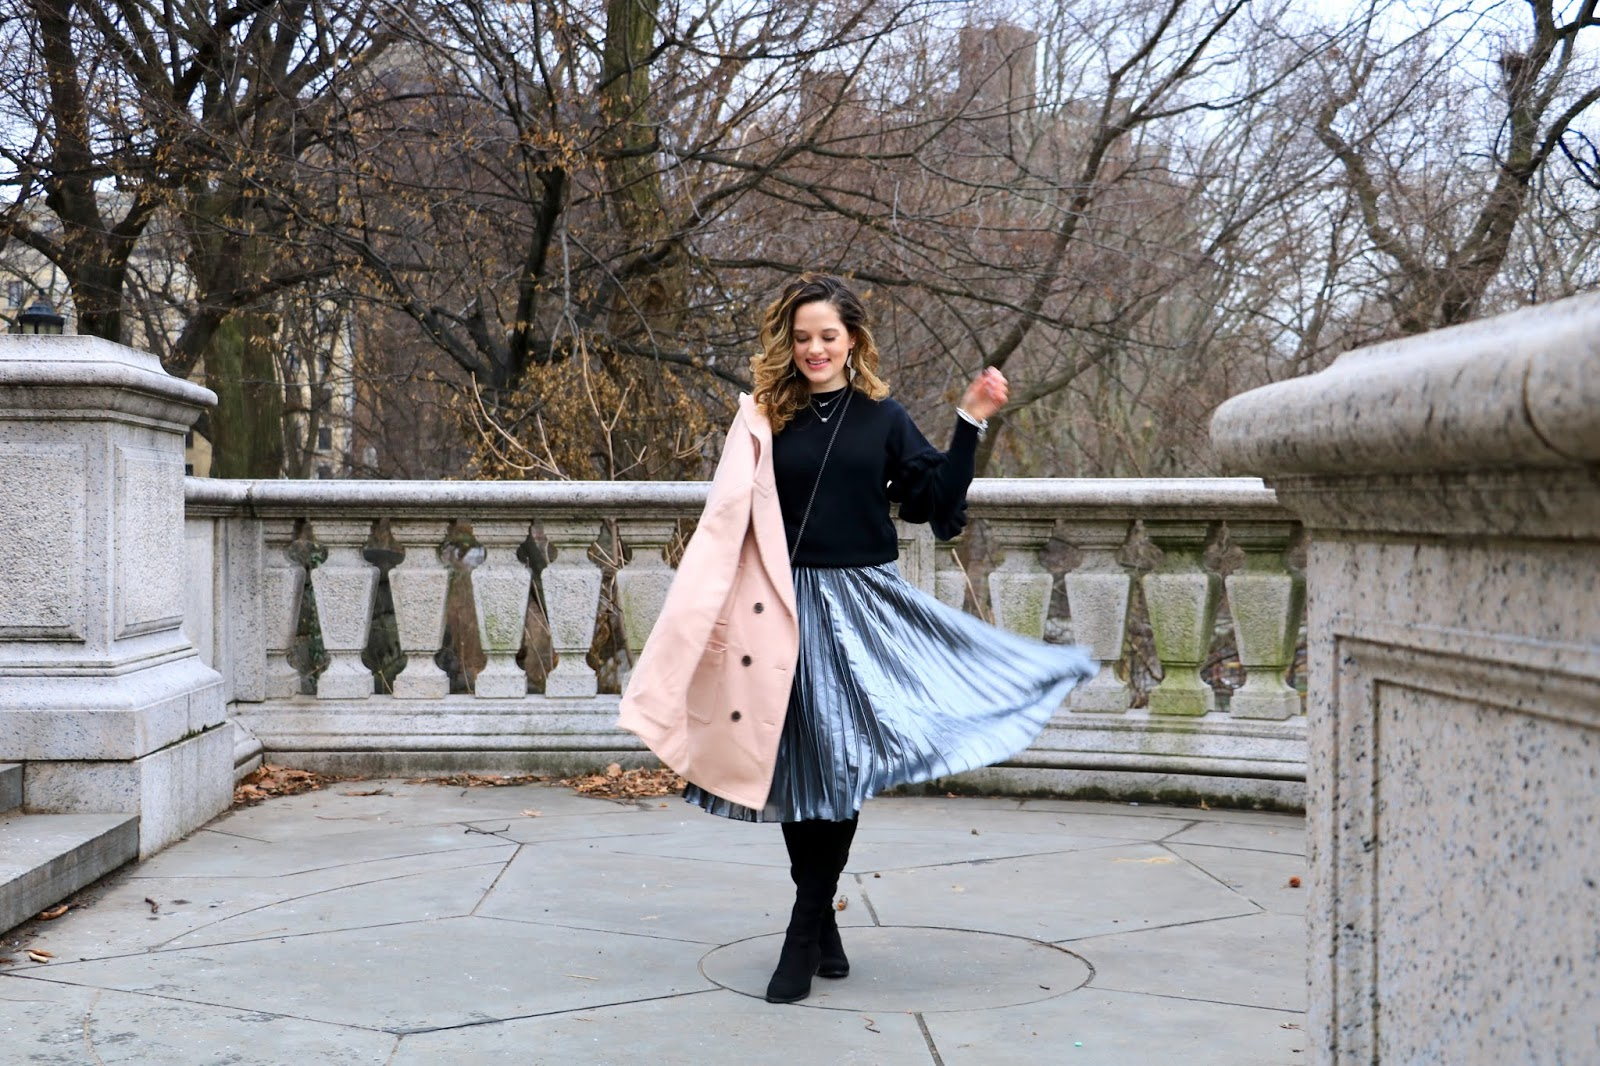 Nyc fashion blogger Kathleen Harper's 2019 Valentine's Day outfit